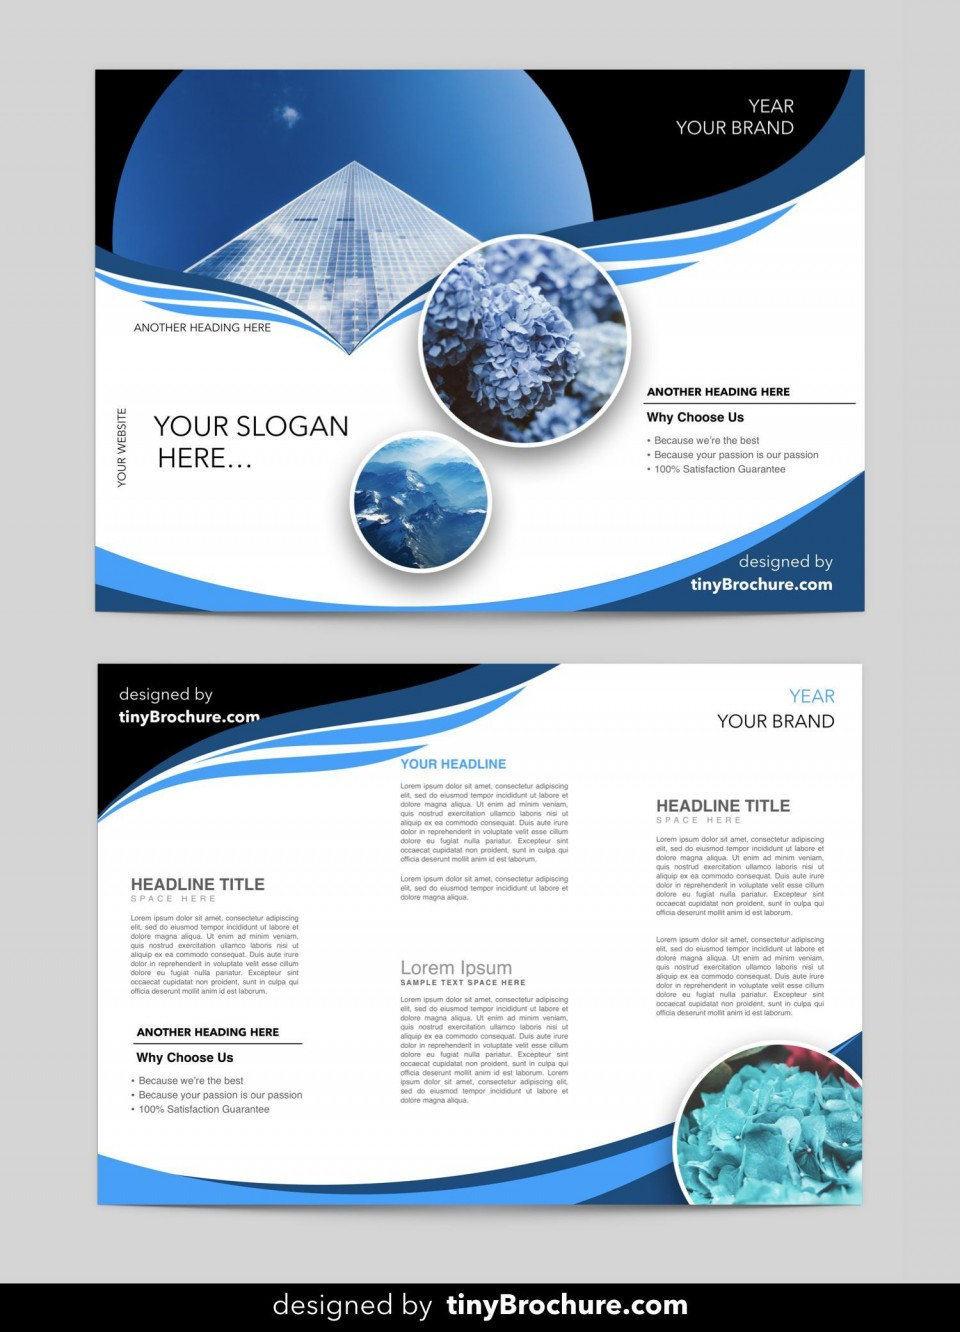 003 Wonderful Download Brochure Template For Word 2007 High Definition 960